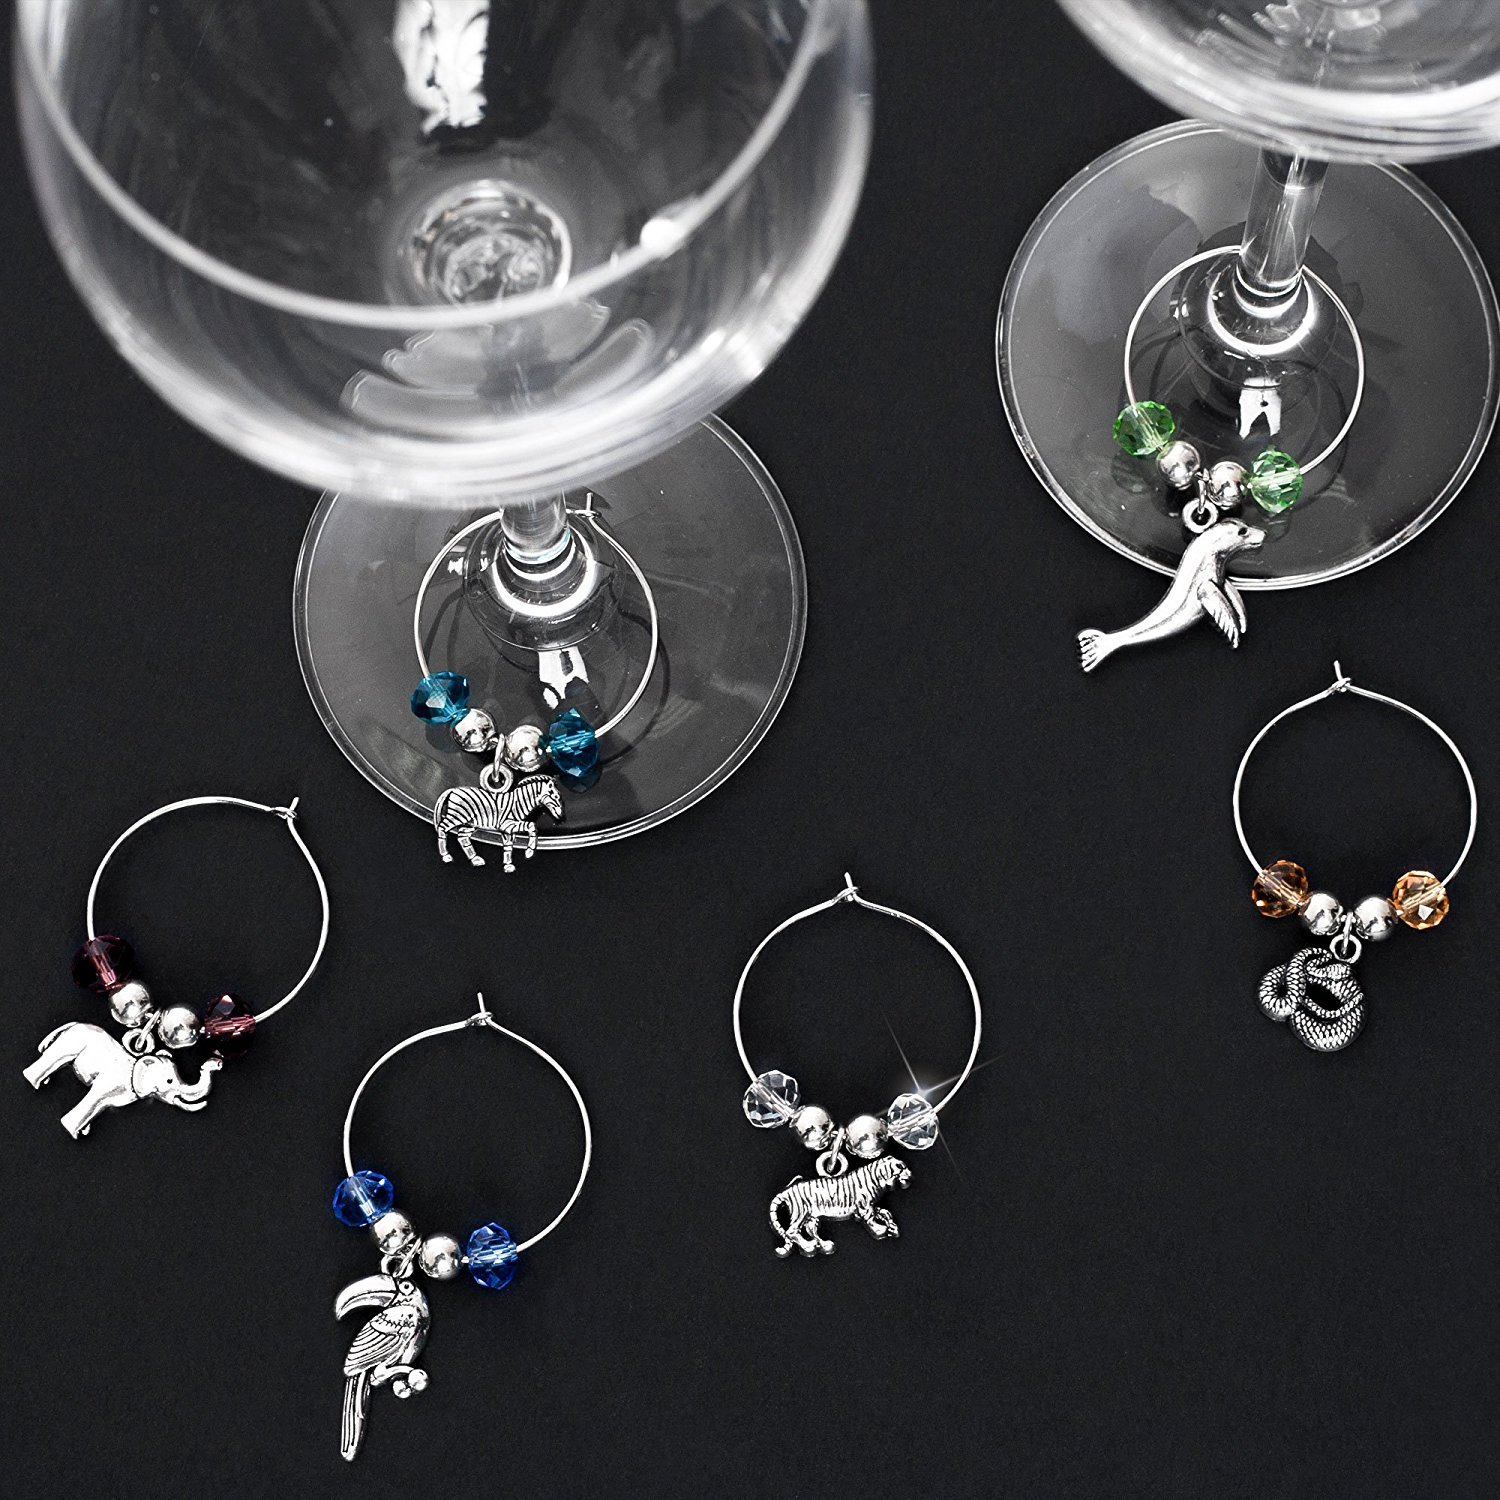 Set of 6 Stefania Sole Wine Glass Charms for Weddings Animals World COMINHKPR145595 Steel Rings with Beads and Stainless Steel Charms Handmade Accessories Dinners /& Parties Unique Design